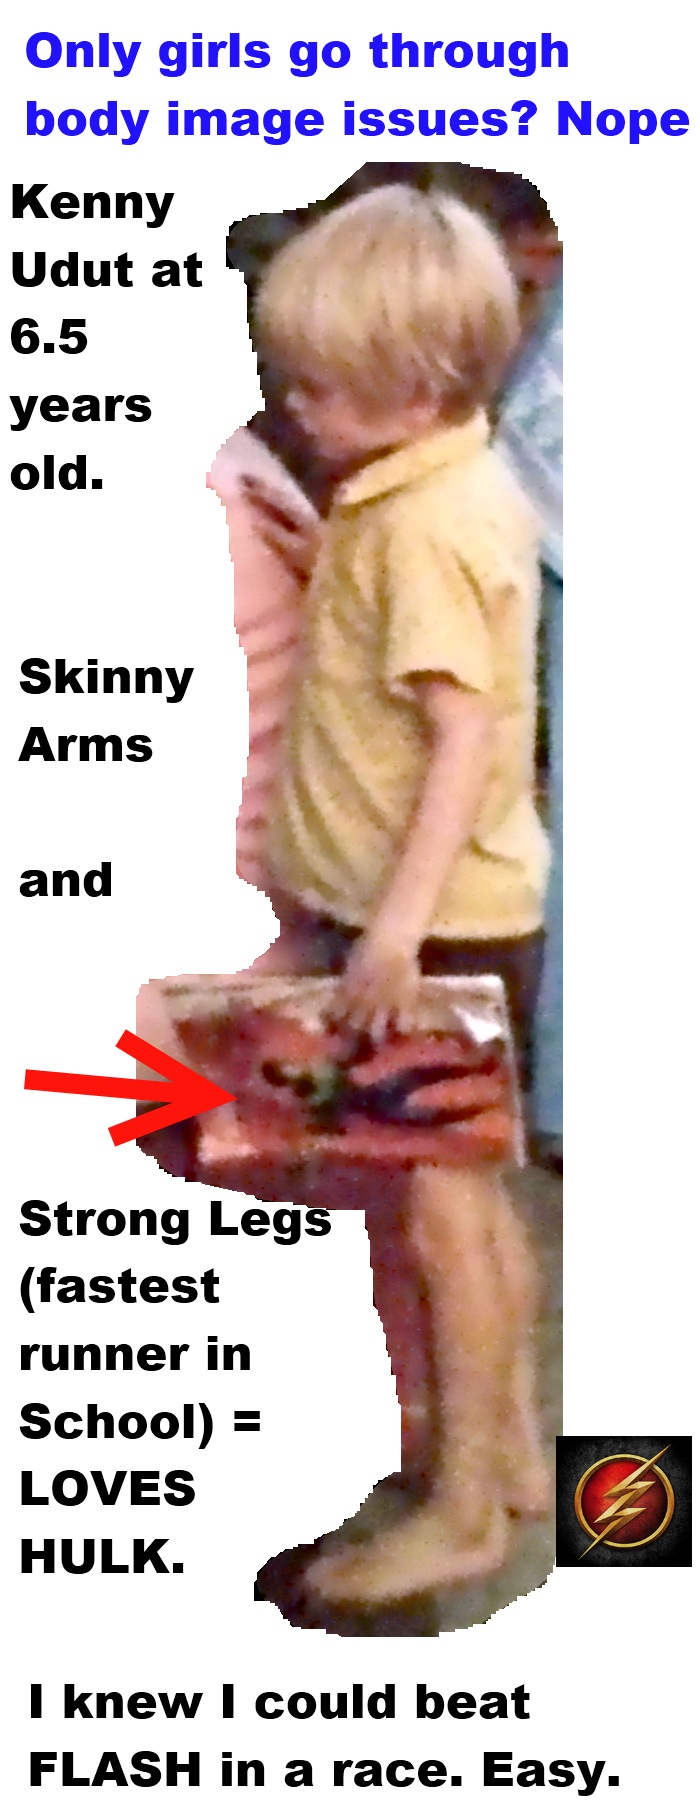 skinny-arms-strong-legs